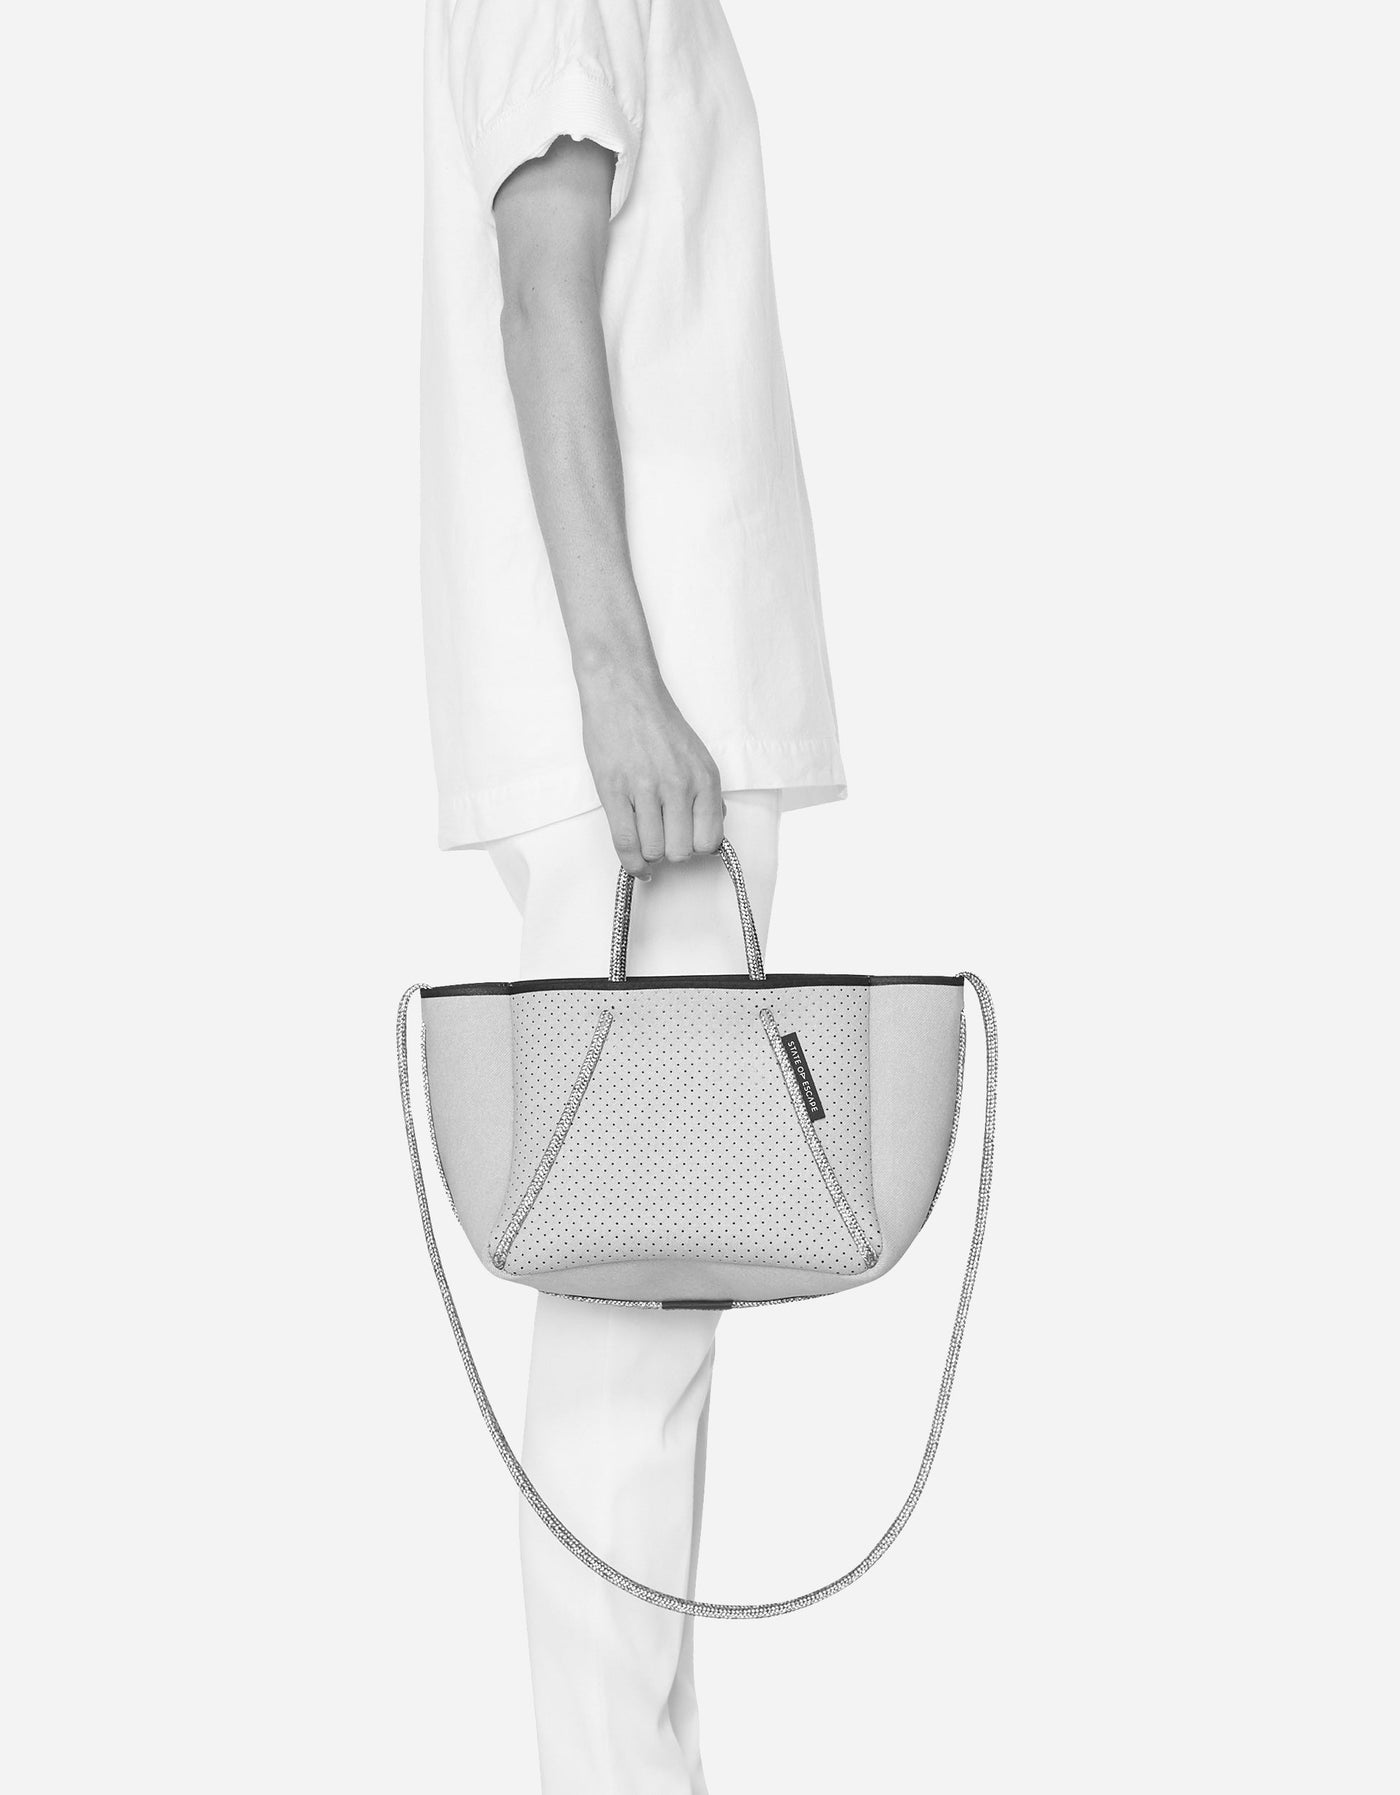 Petite guise tote bag in washed pale grey denim print